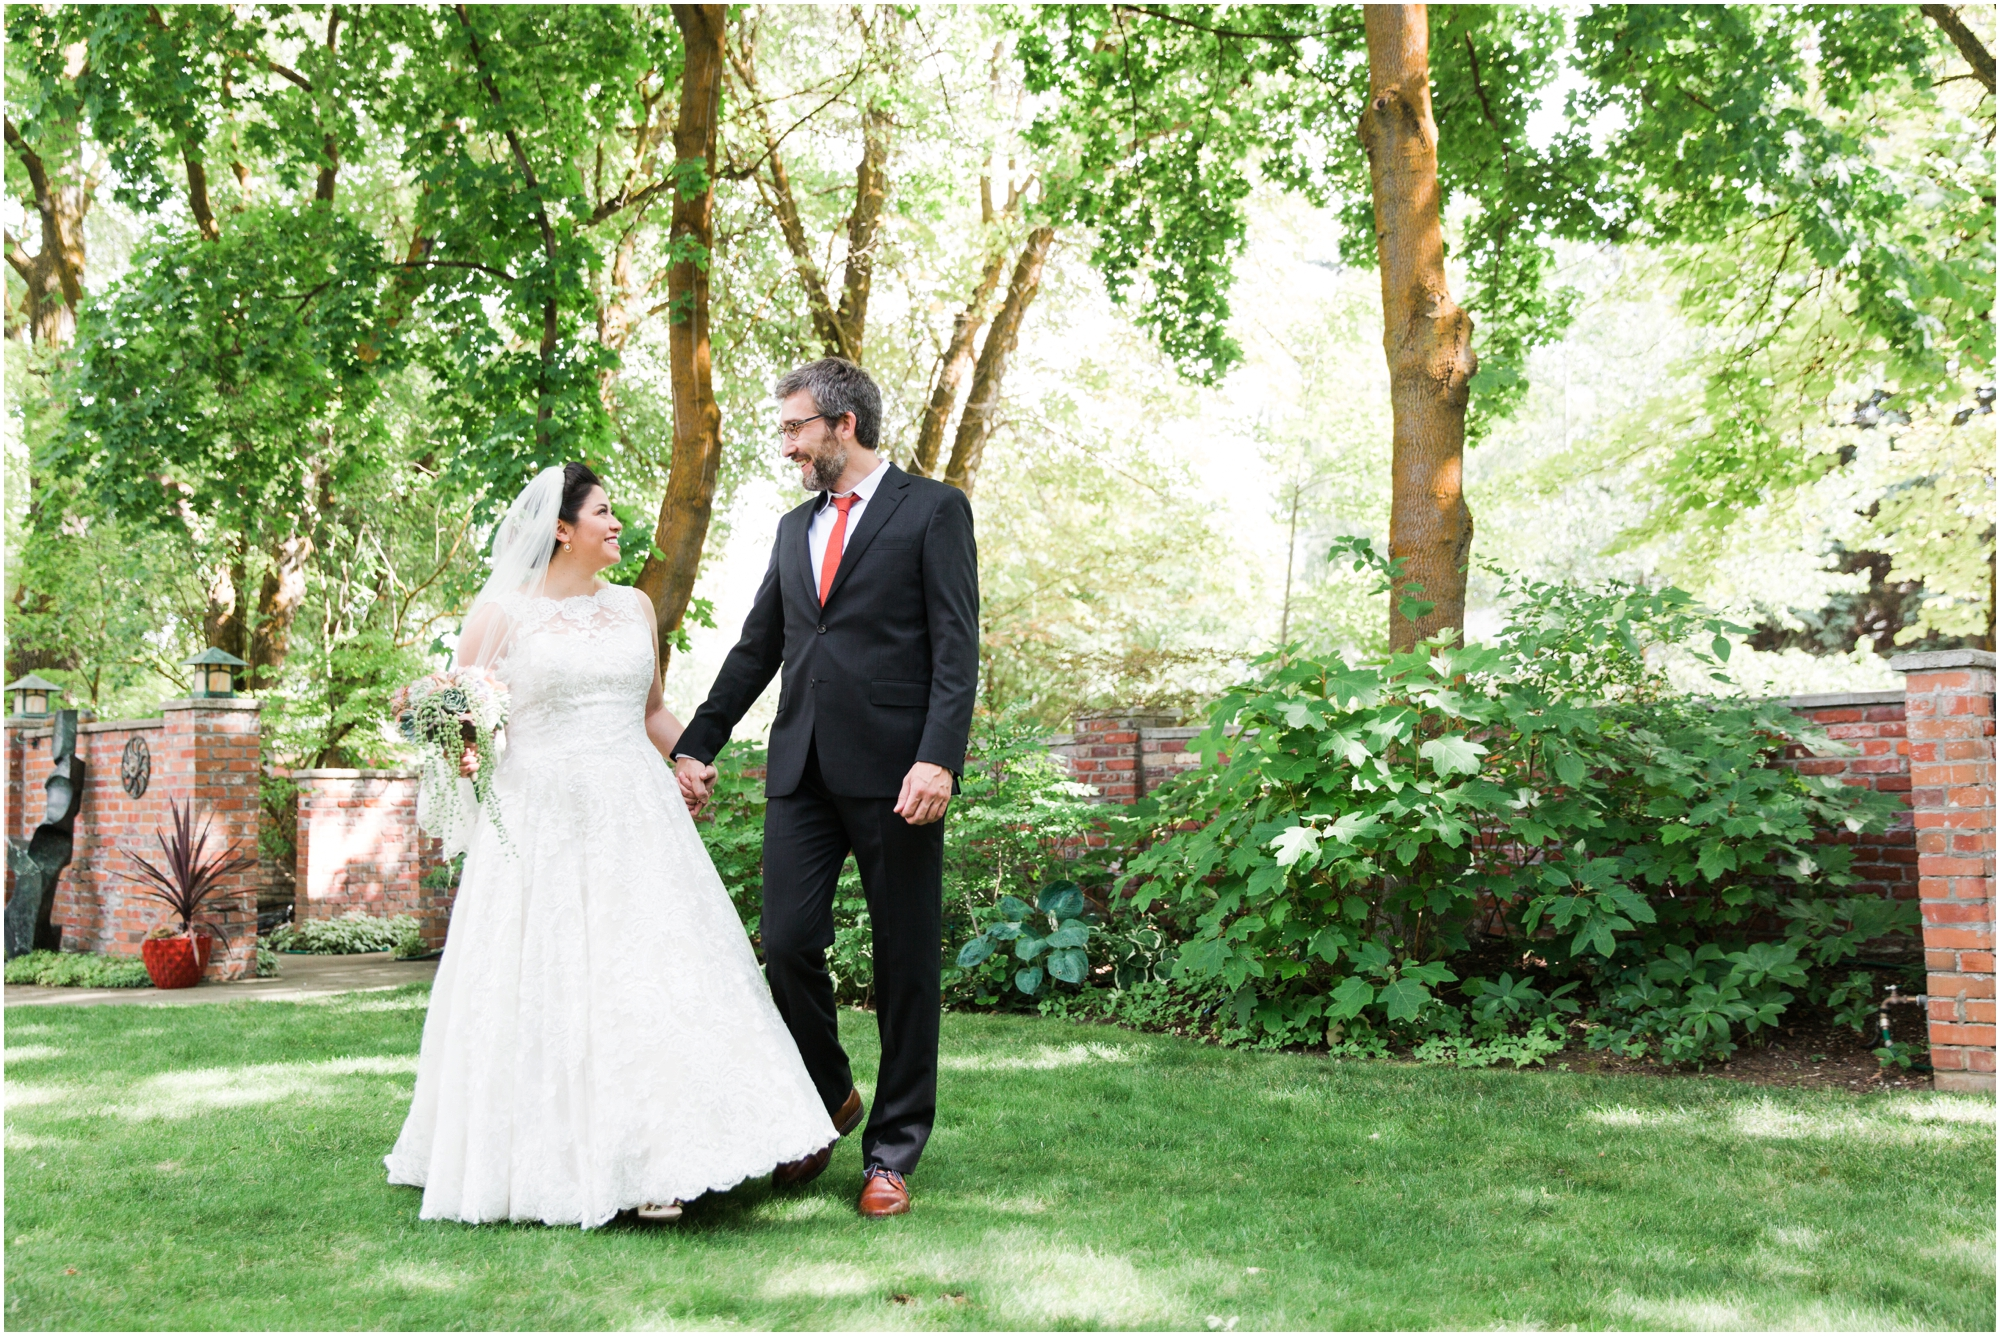 Garden wedding in Ellensburg, WA. Photos by Briana Calderon Photography based in the greater Seattle-Tacoma Area._1317.jpg